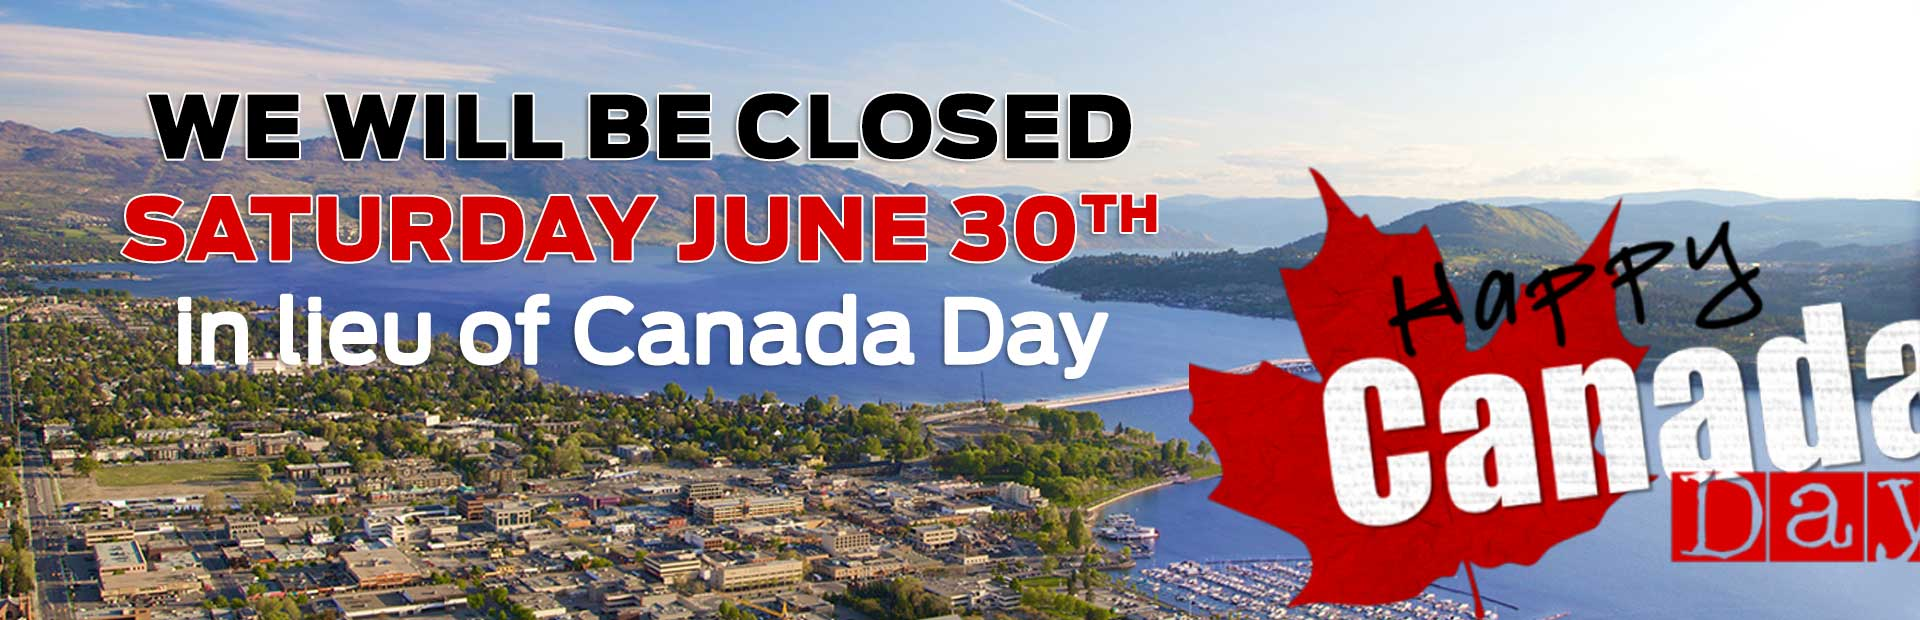 We will be CLOSED Saturday June 30th in lieu of Canada Day!